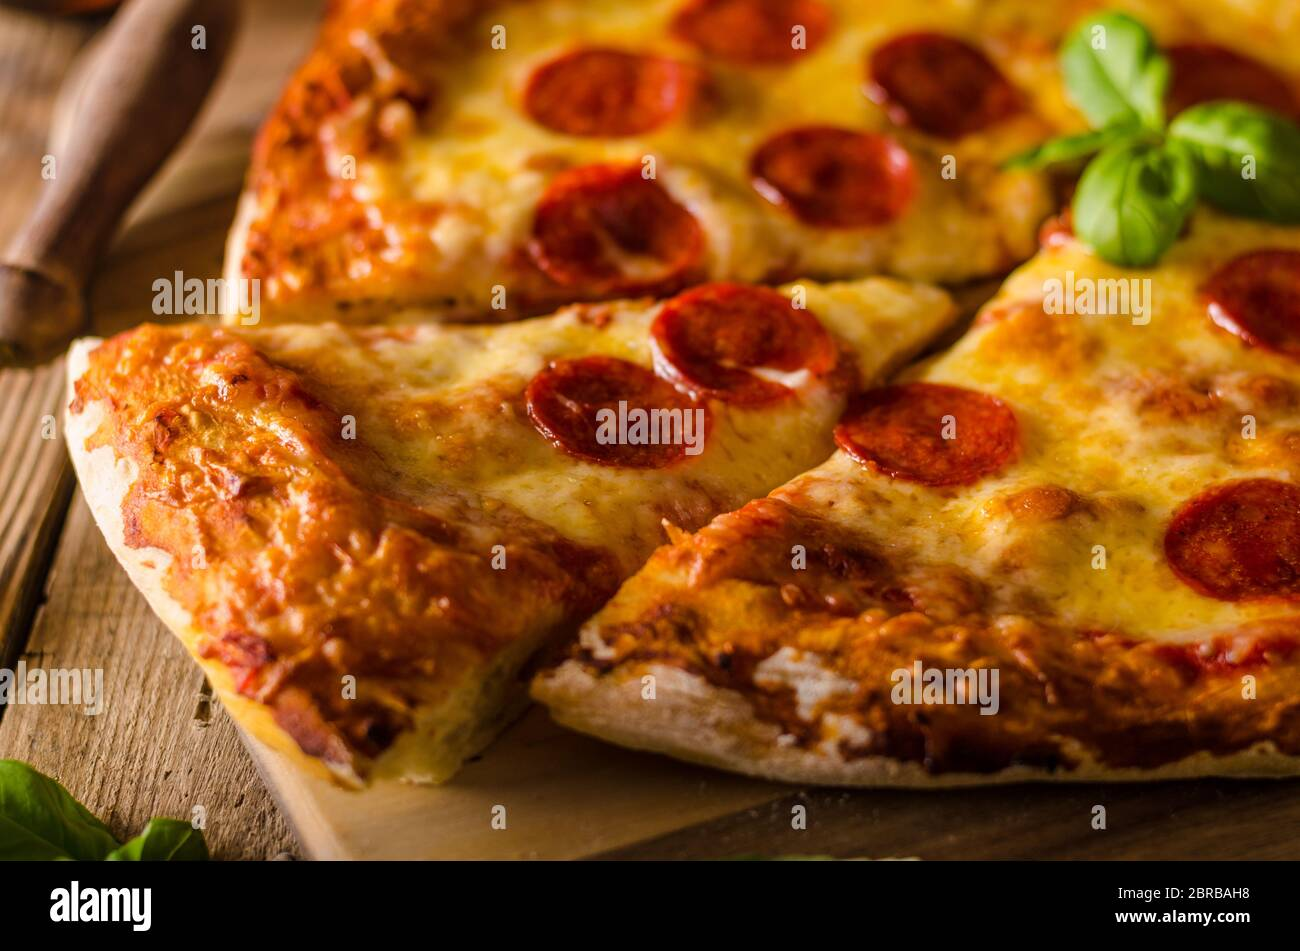 Homemade Cheese Pizza With Salami Delicious Pizza With Cheddar Stock Photo Alamy